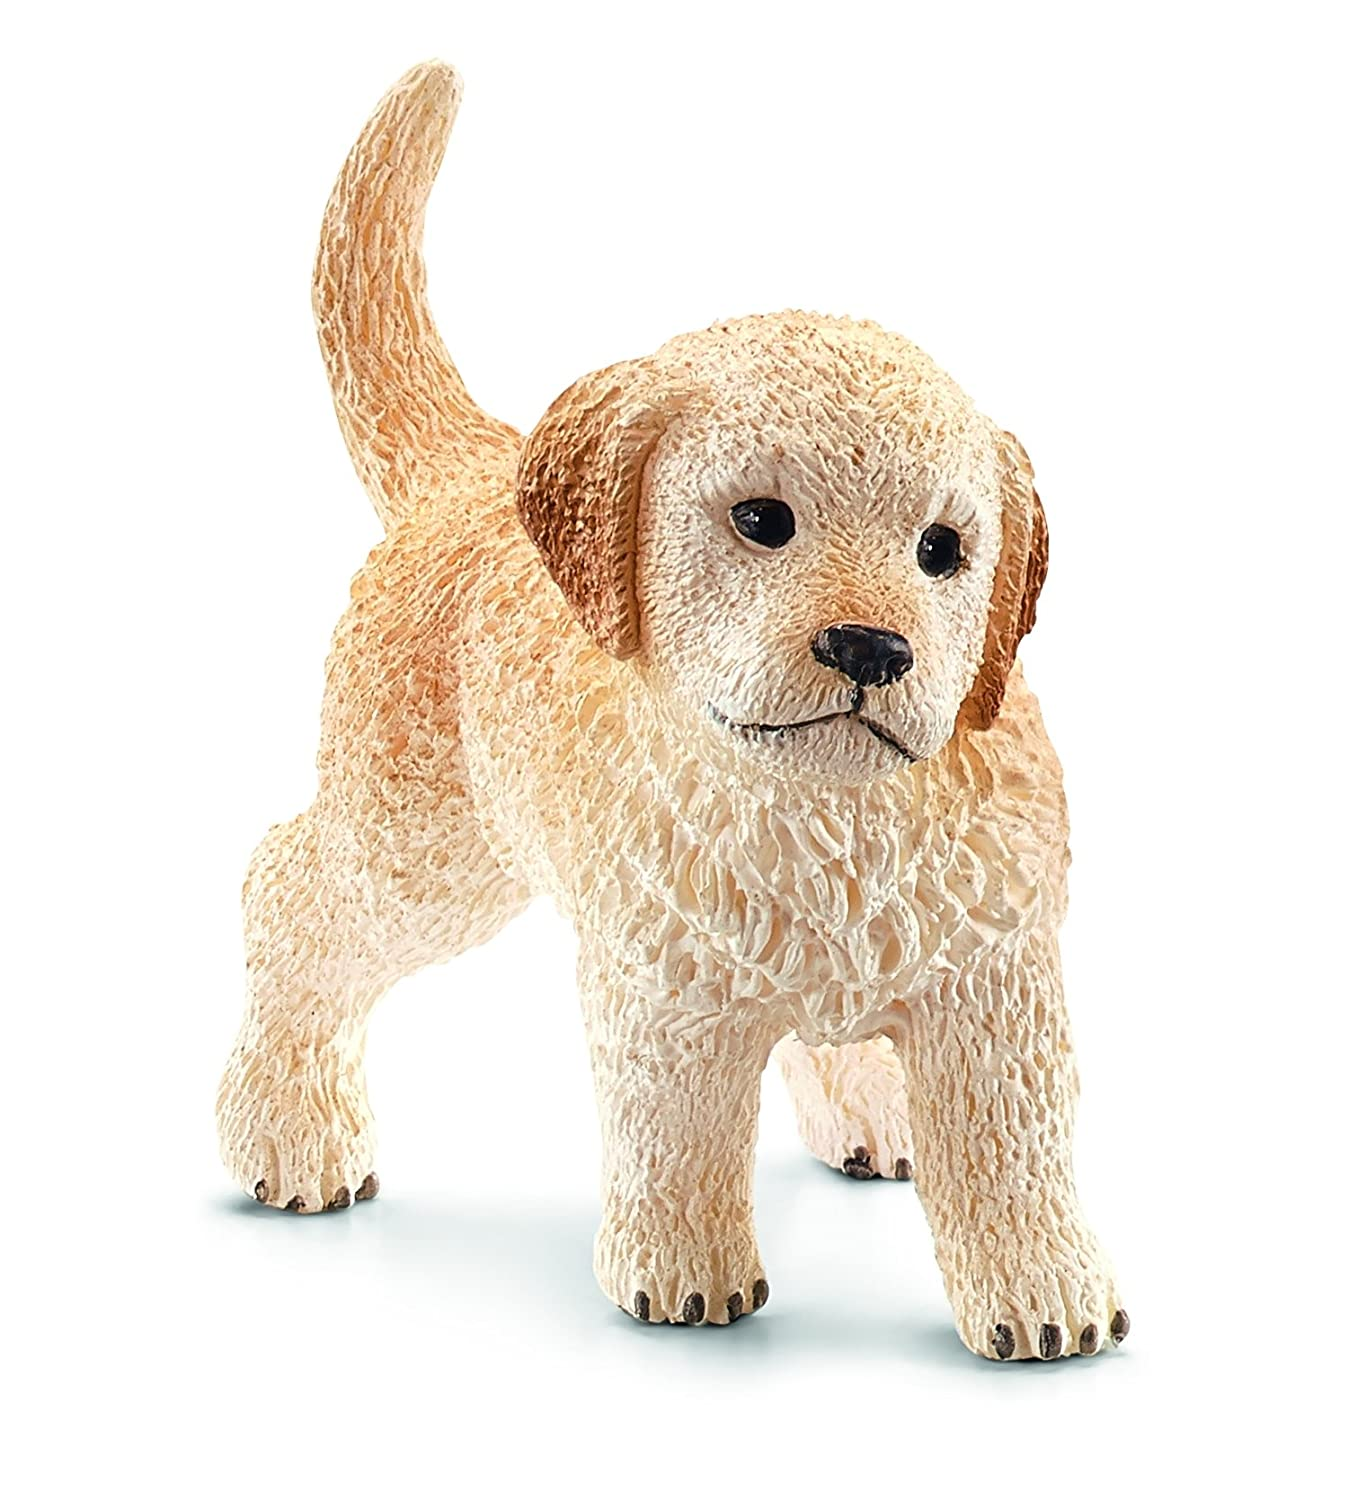 Schleich Puppy Golden Retriever Toy Figure Schleich North America 16396